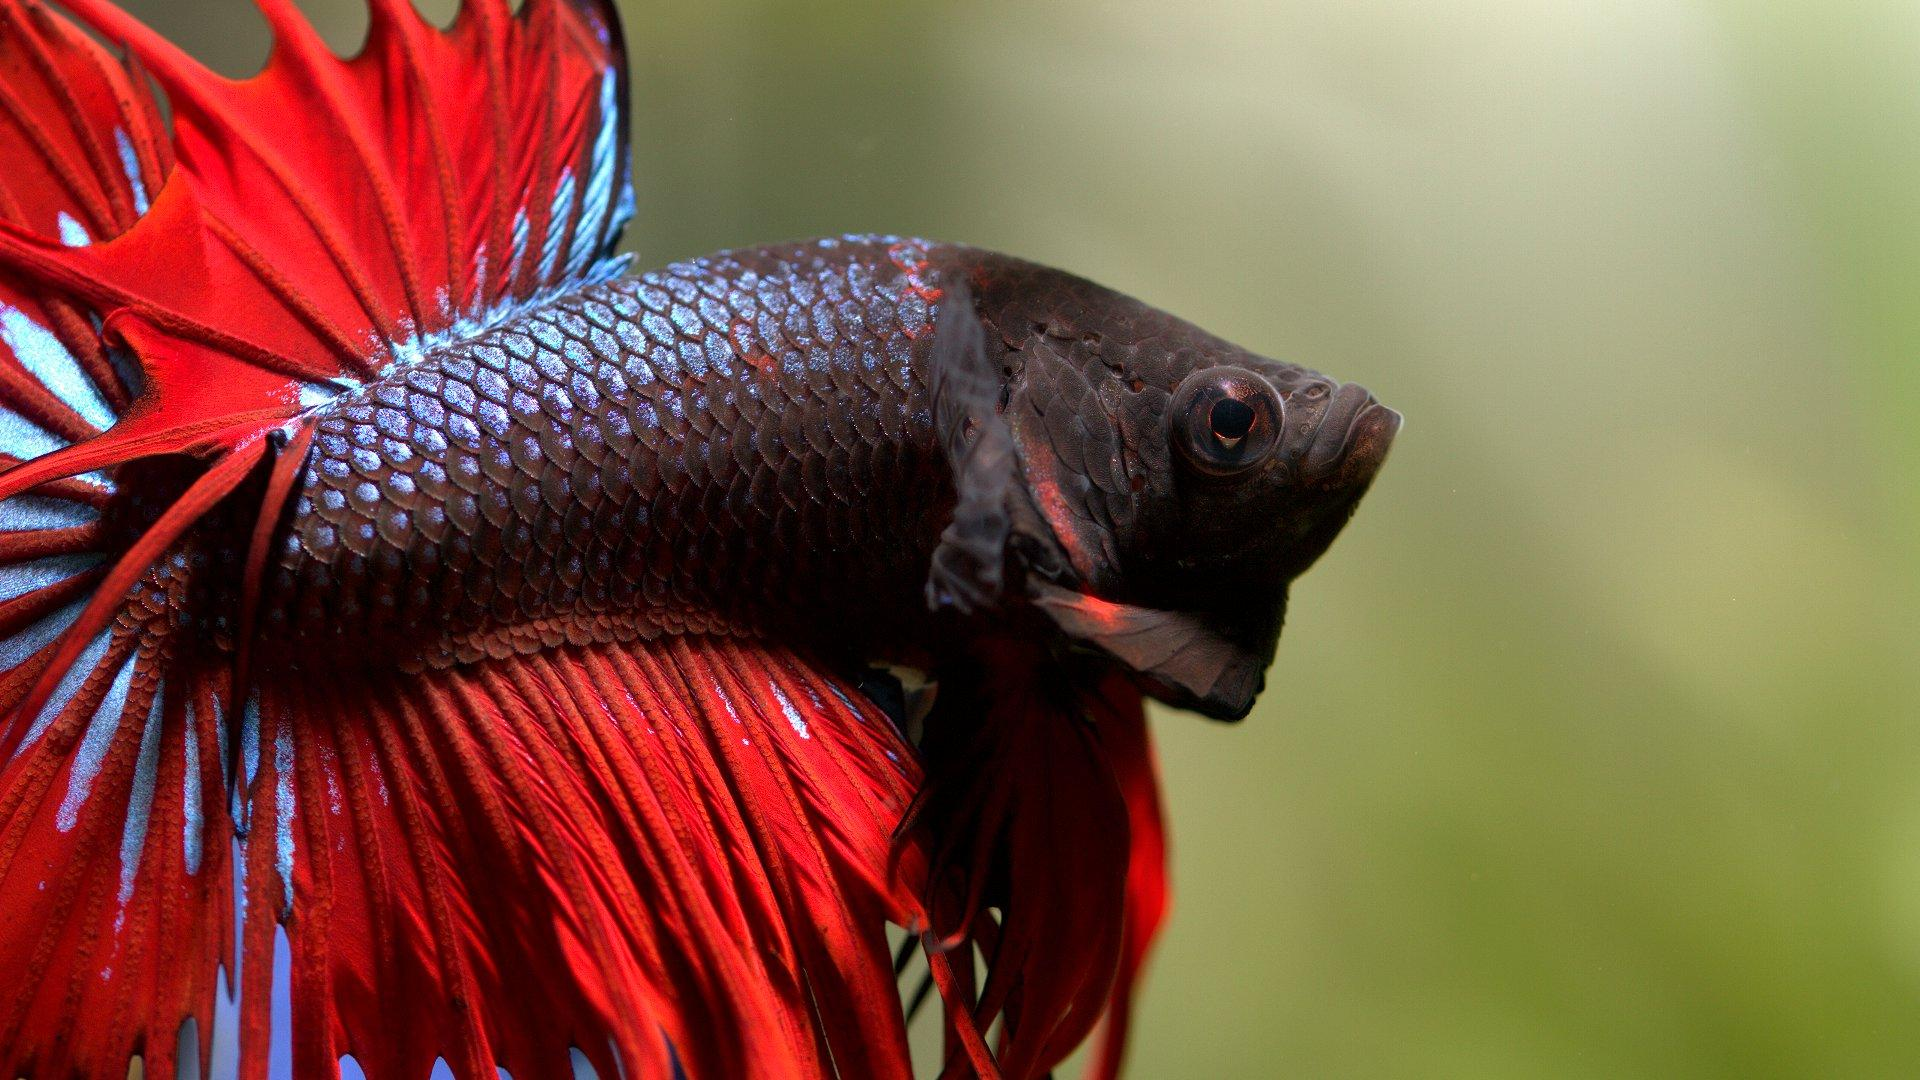 Betta Fish Care for New Owners